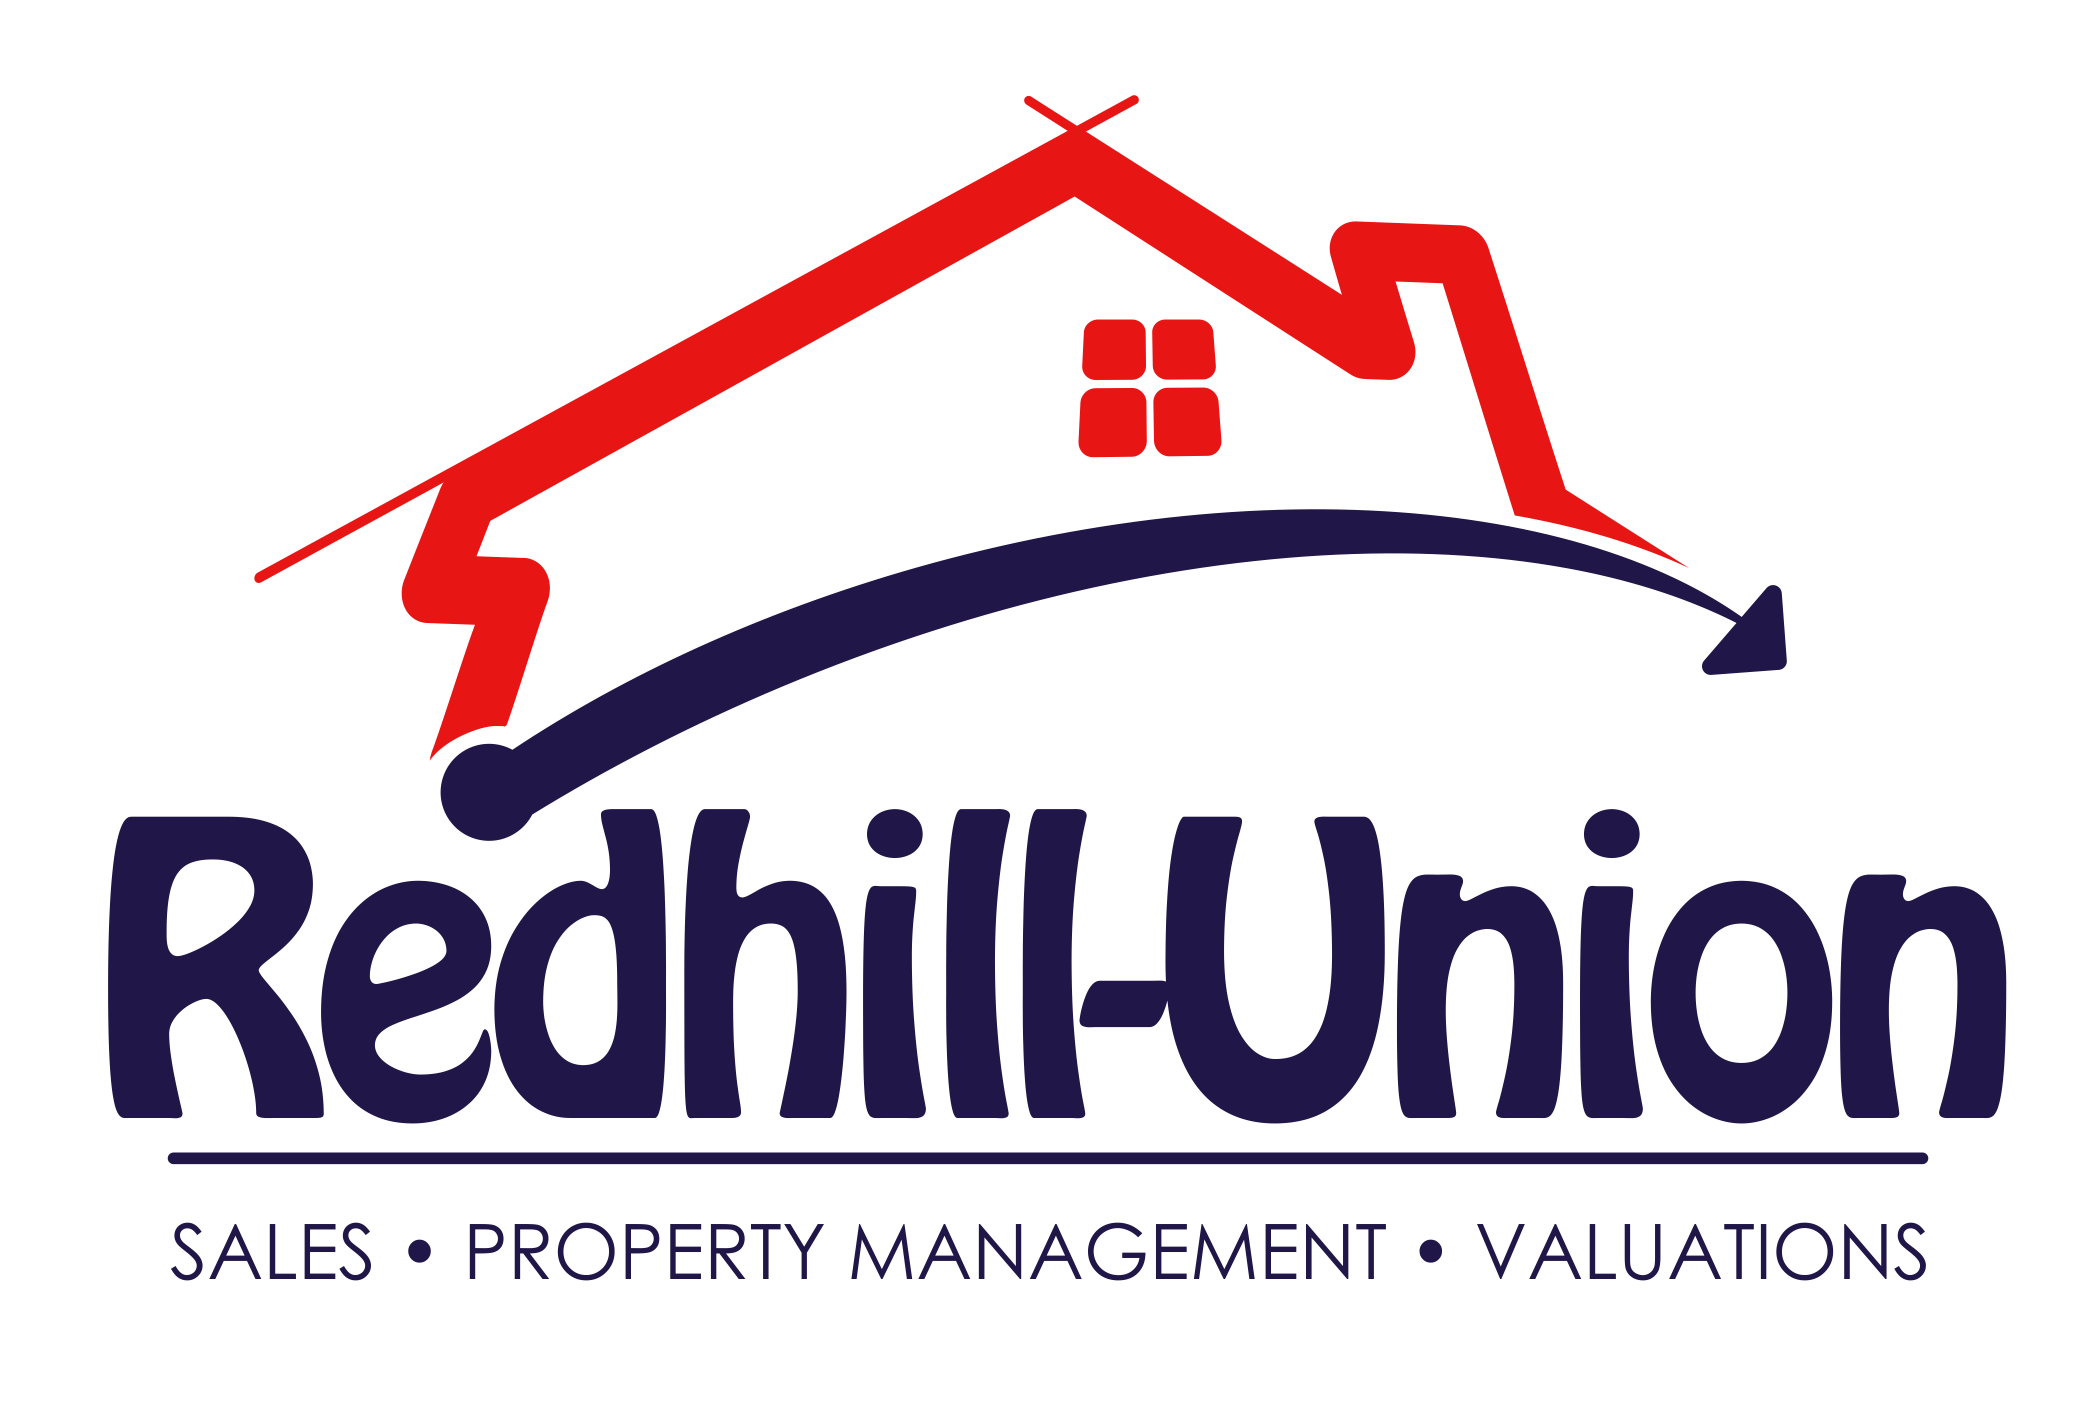 Redhill-Union   Property management company in Springs  Properties for sale Springs eastrand   Property rentals eastrand  Marketing or rental Determination valuation  Gauteng  Property management East Rand   Sectional title replacement valuation  Gauteng